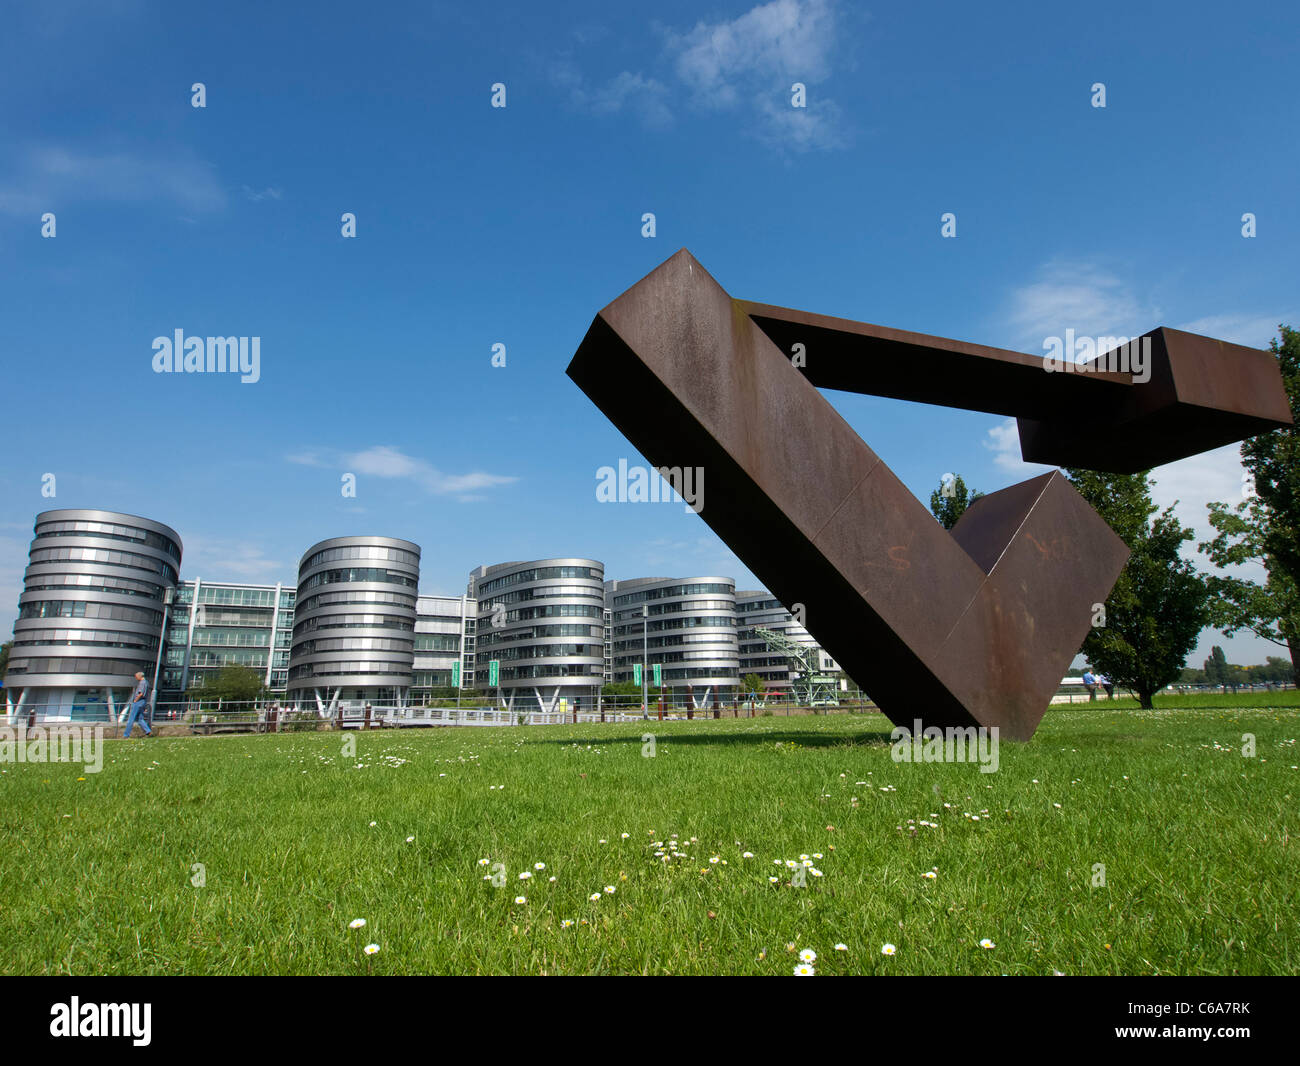 Steel sculpture and modern office buildings at Innenhafen area of Duisburg in North Rhine-Westphalia Germany - Stock Image